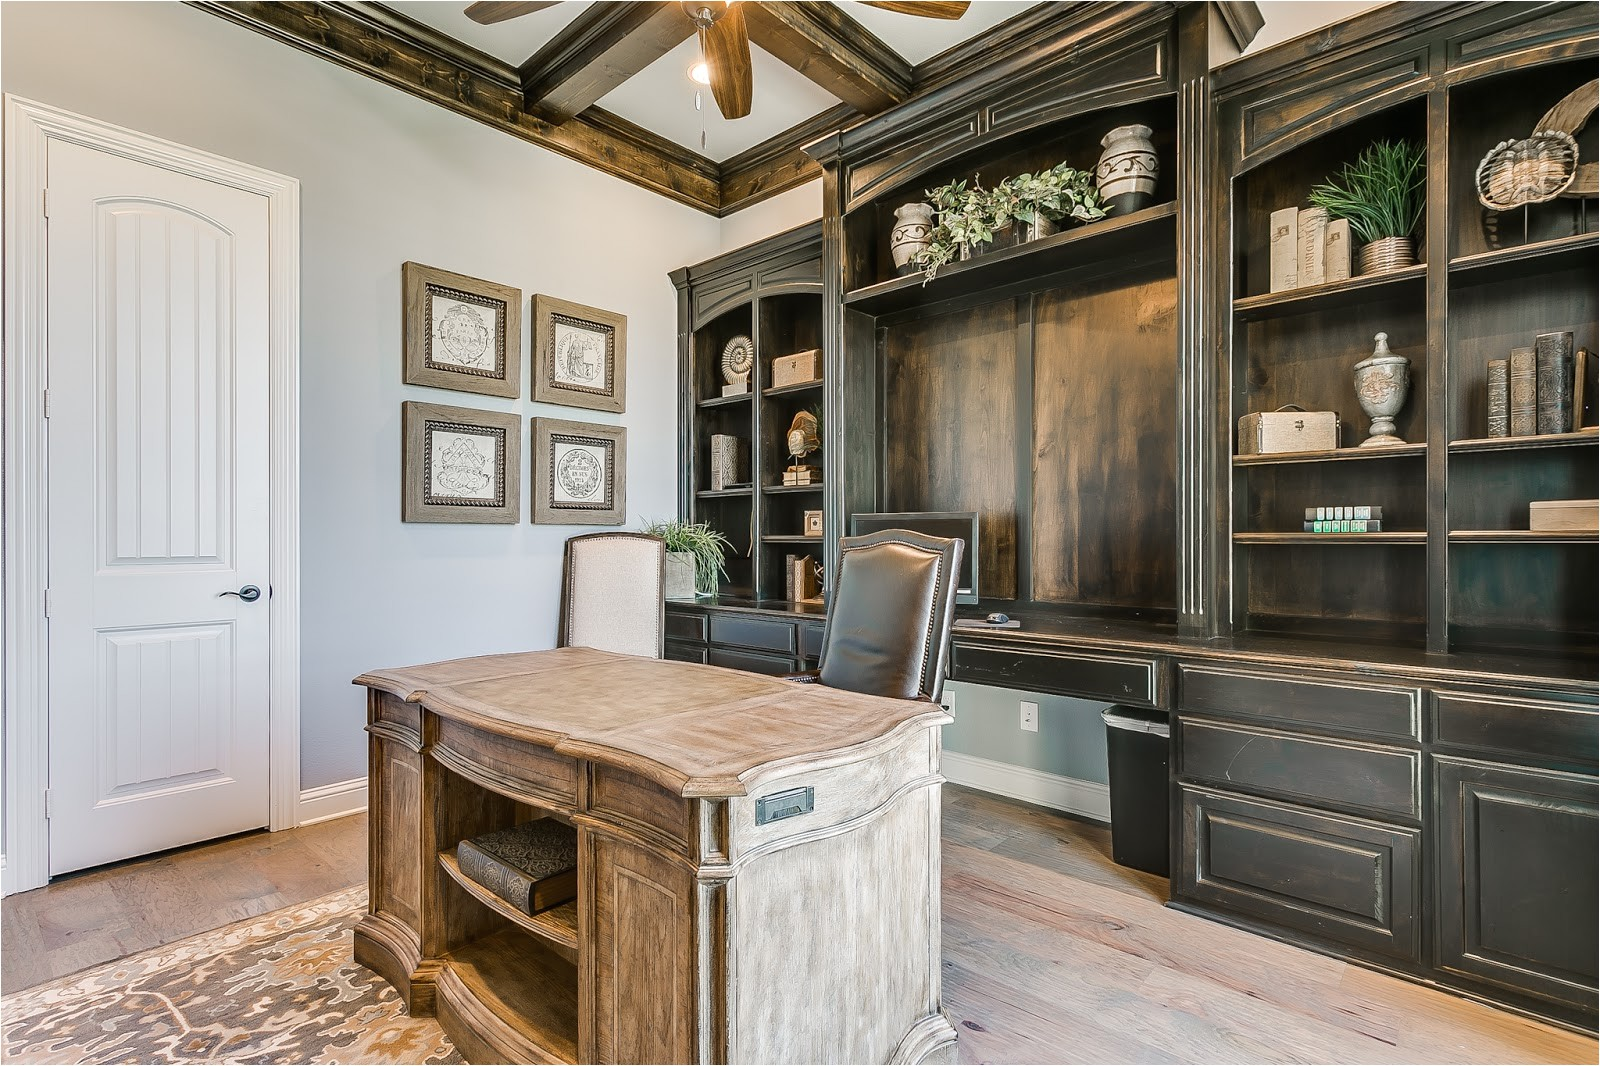 once you pass through the wood trimmed arch way a living and kitchen area decorated with a serene yet modern feel is discovered